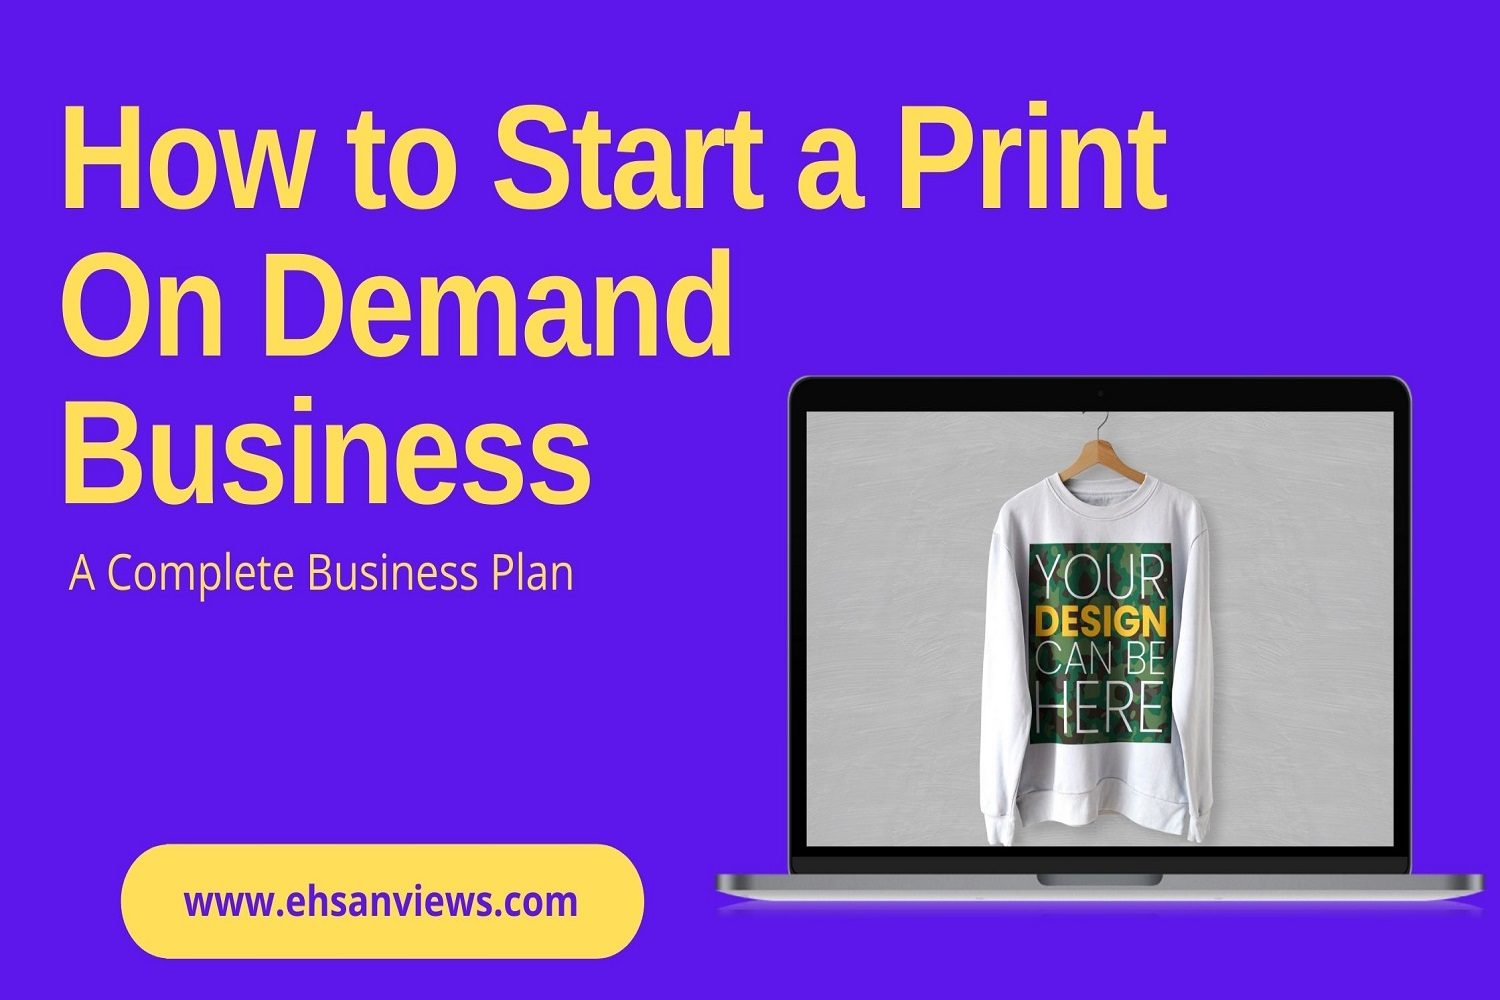 How to Start a Print On Demand Business - A Complete Business Plan | Grow Your Business Online | Must Read Digital Marketing Guide | Passive Income Ideas